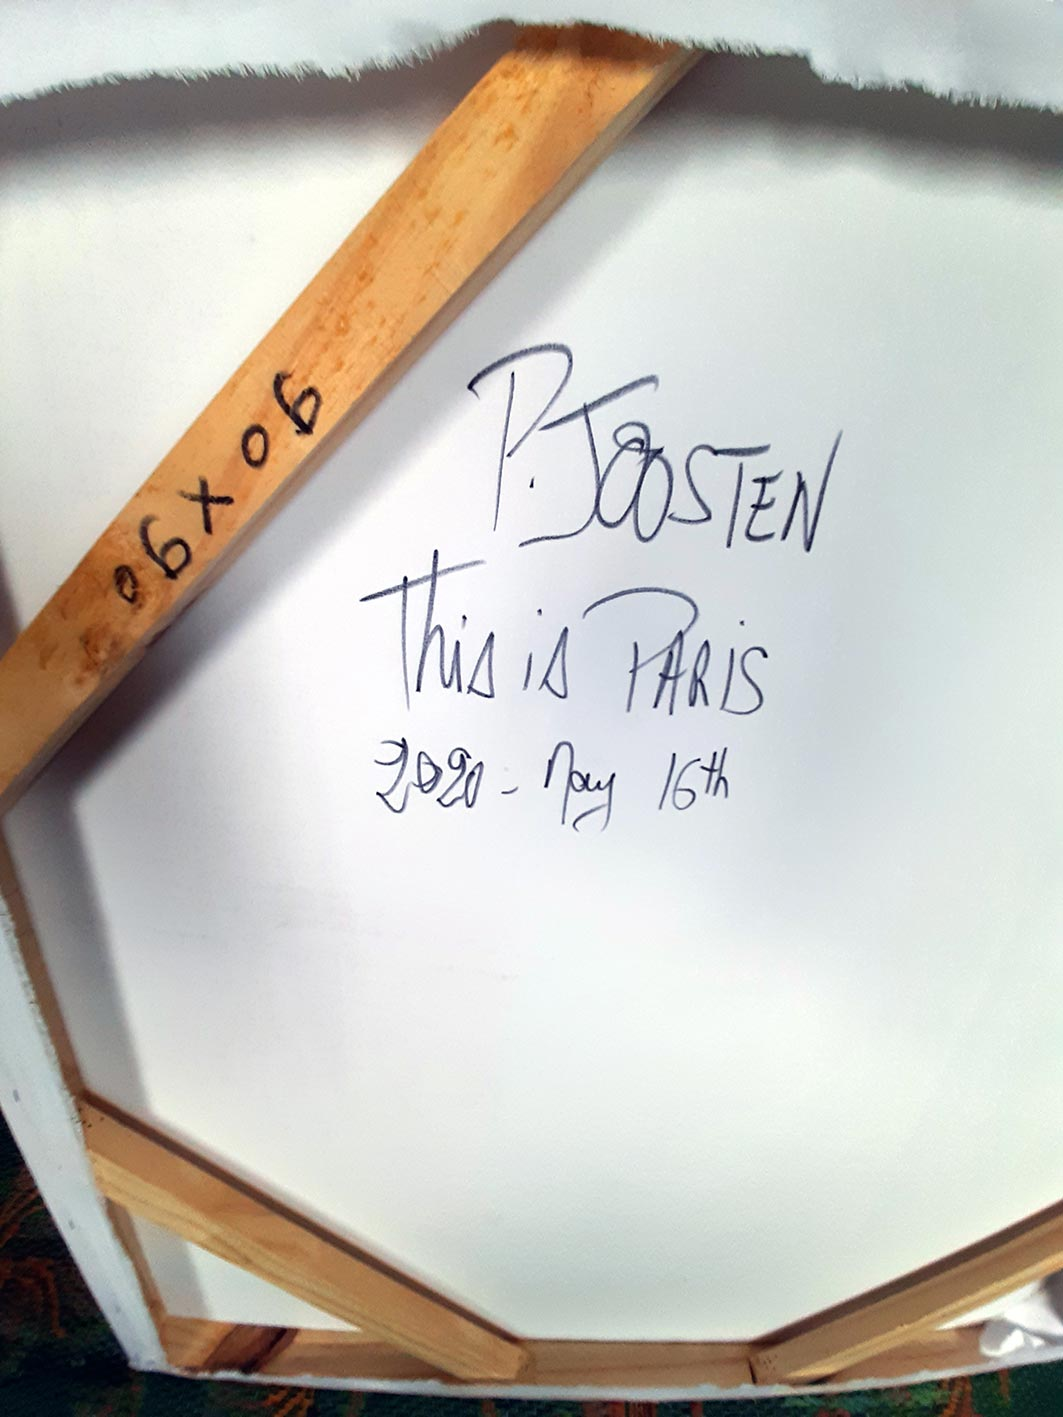 This-is-PARIS-Patrick-Joosten-2020-May-16th-Back-signature